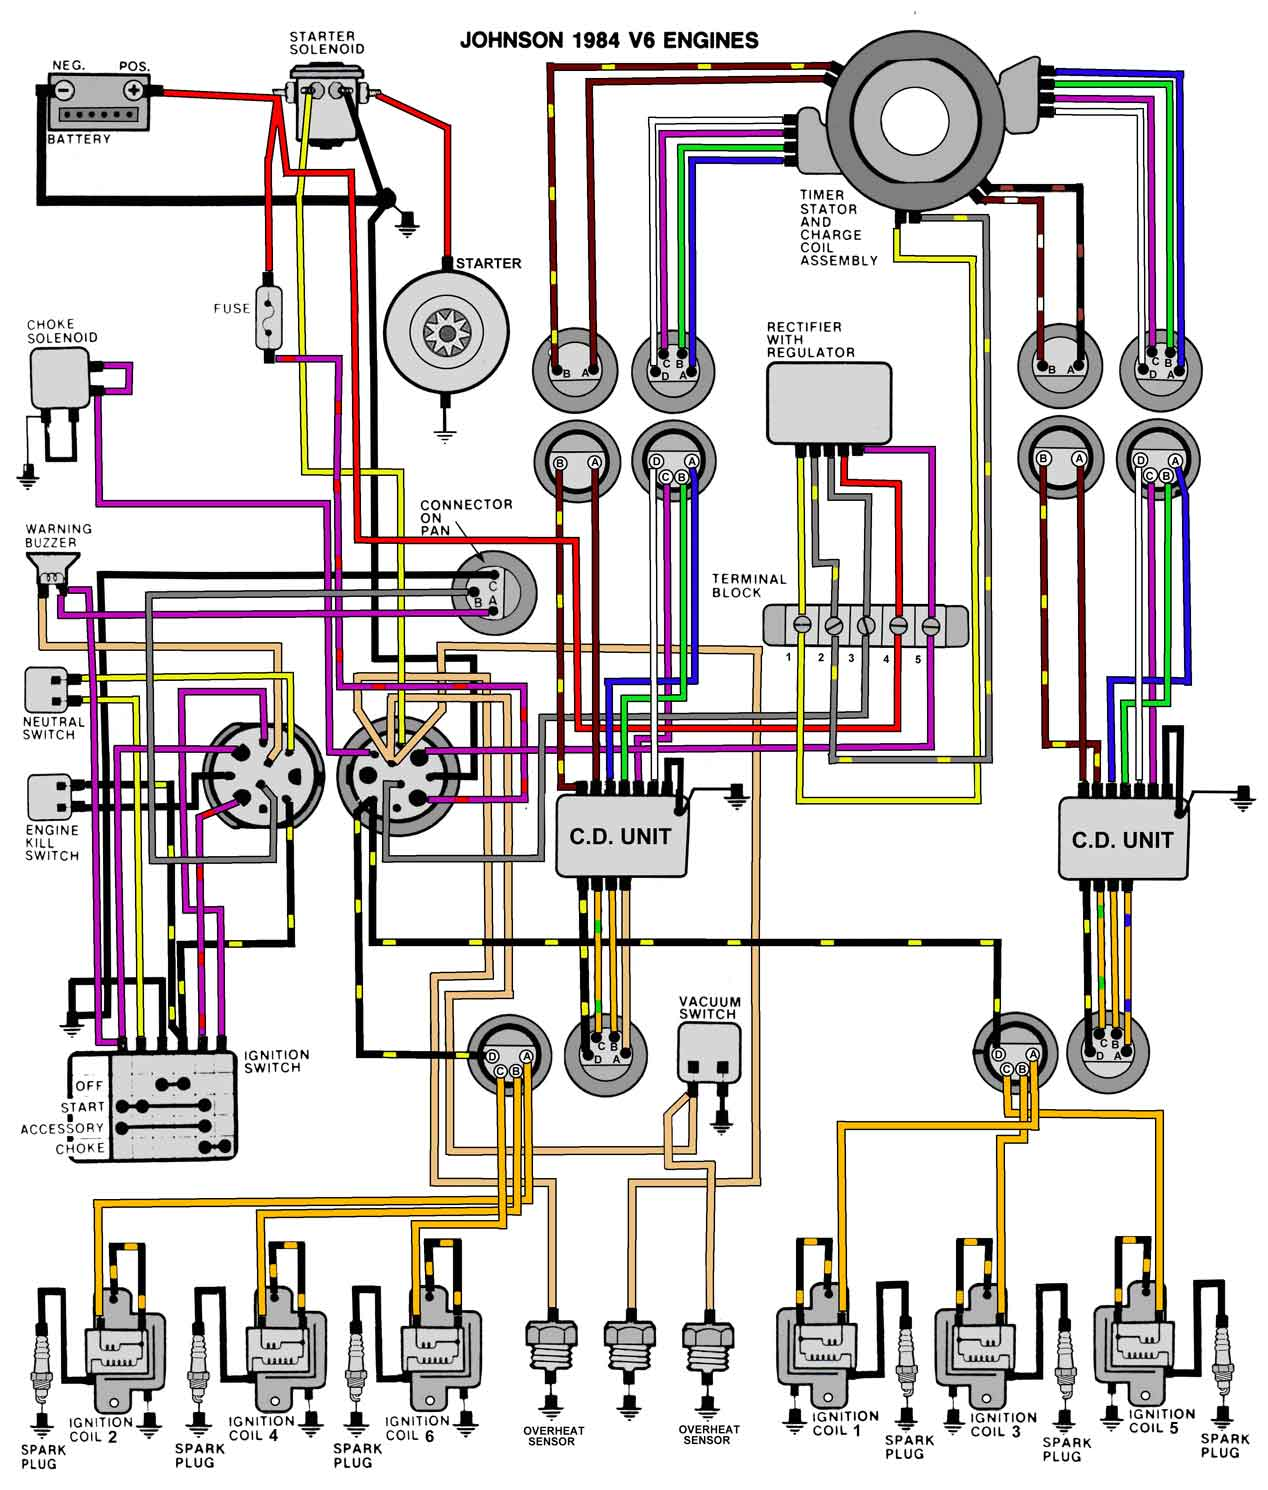 Wiring Schematics For Johnson Outboards | Wiring Diagram on water pump wiring diagram, router wiring diagram, outboard motor wiring diagram, tilt trim troubleshooting, electrical wiring diagram, tilt kettle wiring diagram, tilt trim motor, tilt and trim problems, rectifier wiring diagram, fuel system wiring diagram, tilt trim assembly, tilt trim controls, tilt trim gauge wiring, door wiring diagram, oil wiring diagram, ignition wiring diagram, stator wiring diagram, power tilt wiring diagram, condenser wiring diagram, center console wiring diagram,